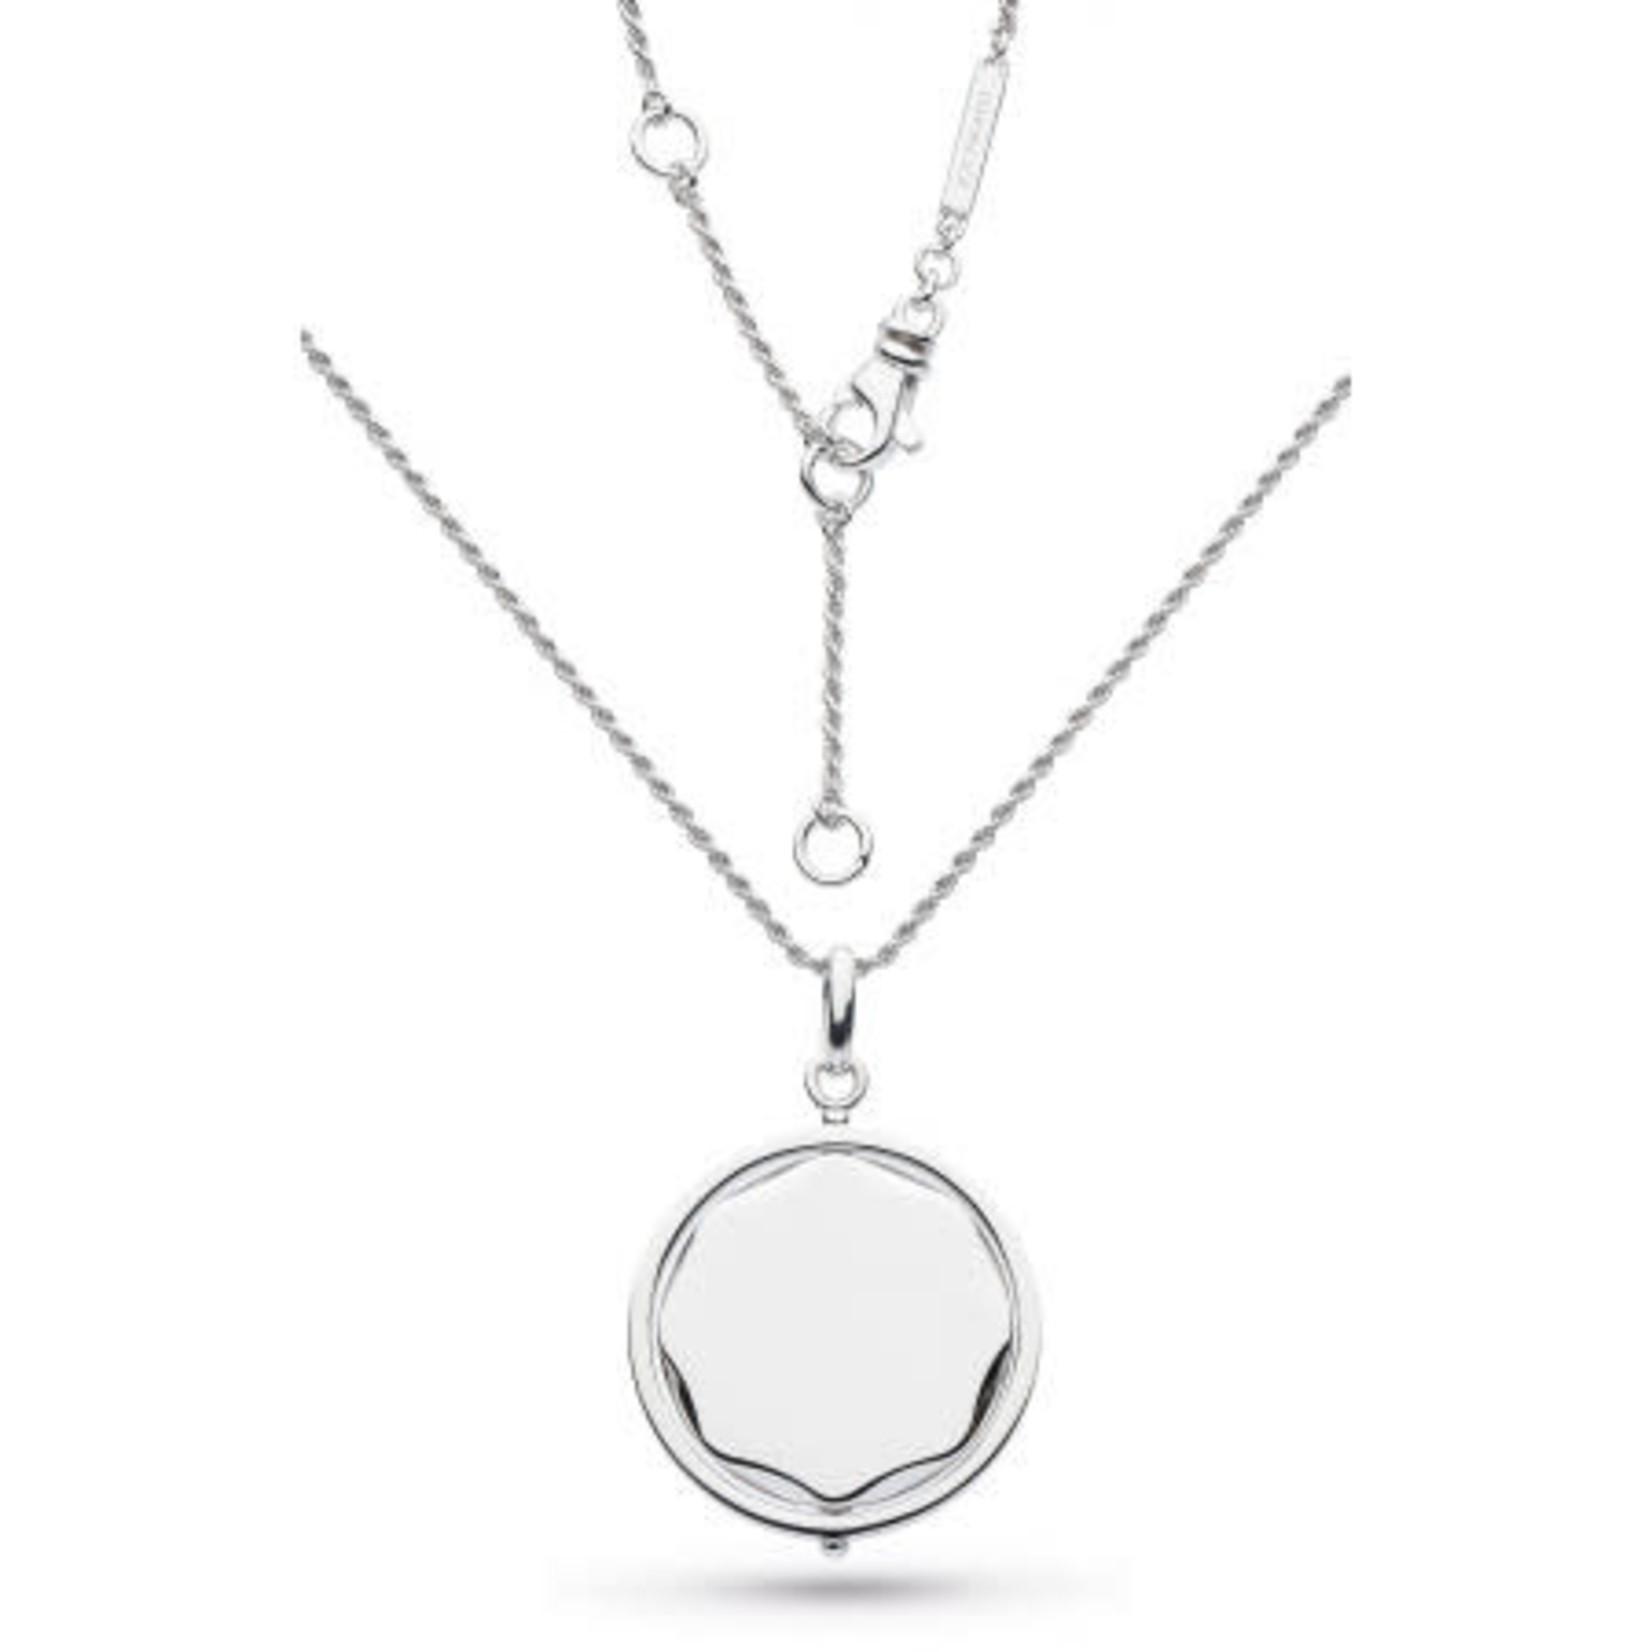 Empire Revival Large Round Spinner Rope Necklace